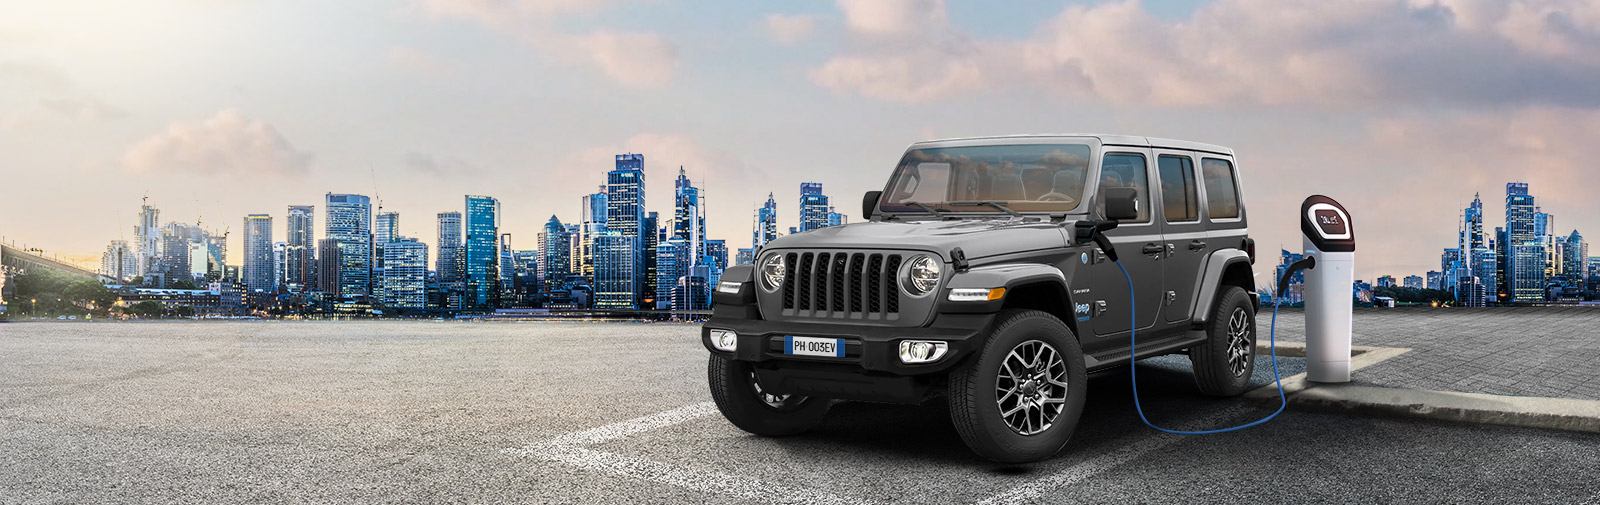 Jeep Wrangler 4xe Plug-in-Hybrid Angebote Business Leasing